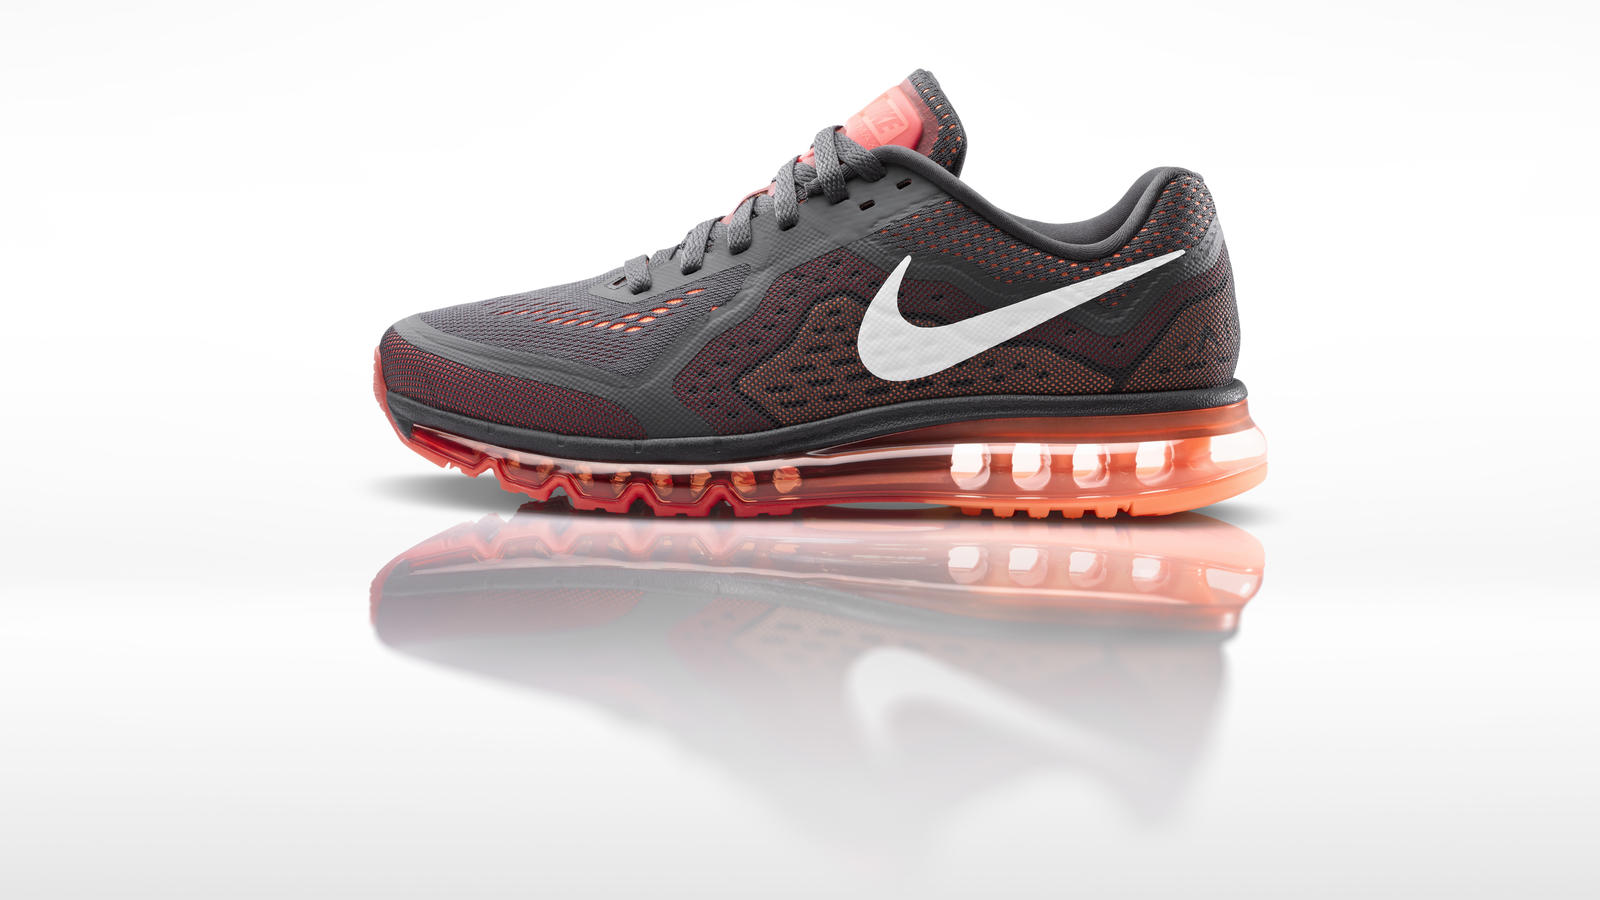 Nike Unveils Nike Flyknit Air Max and